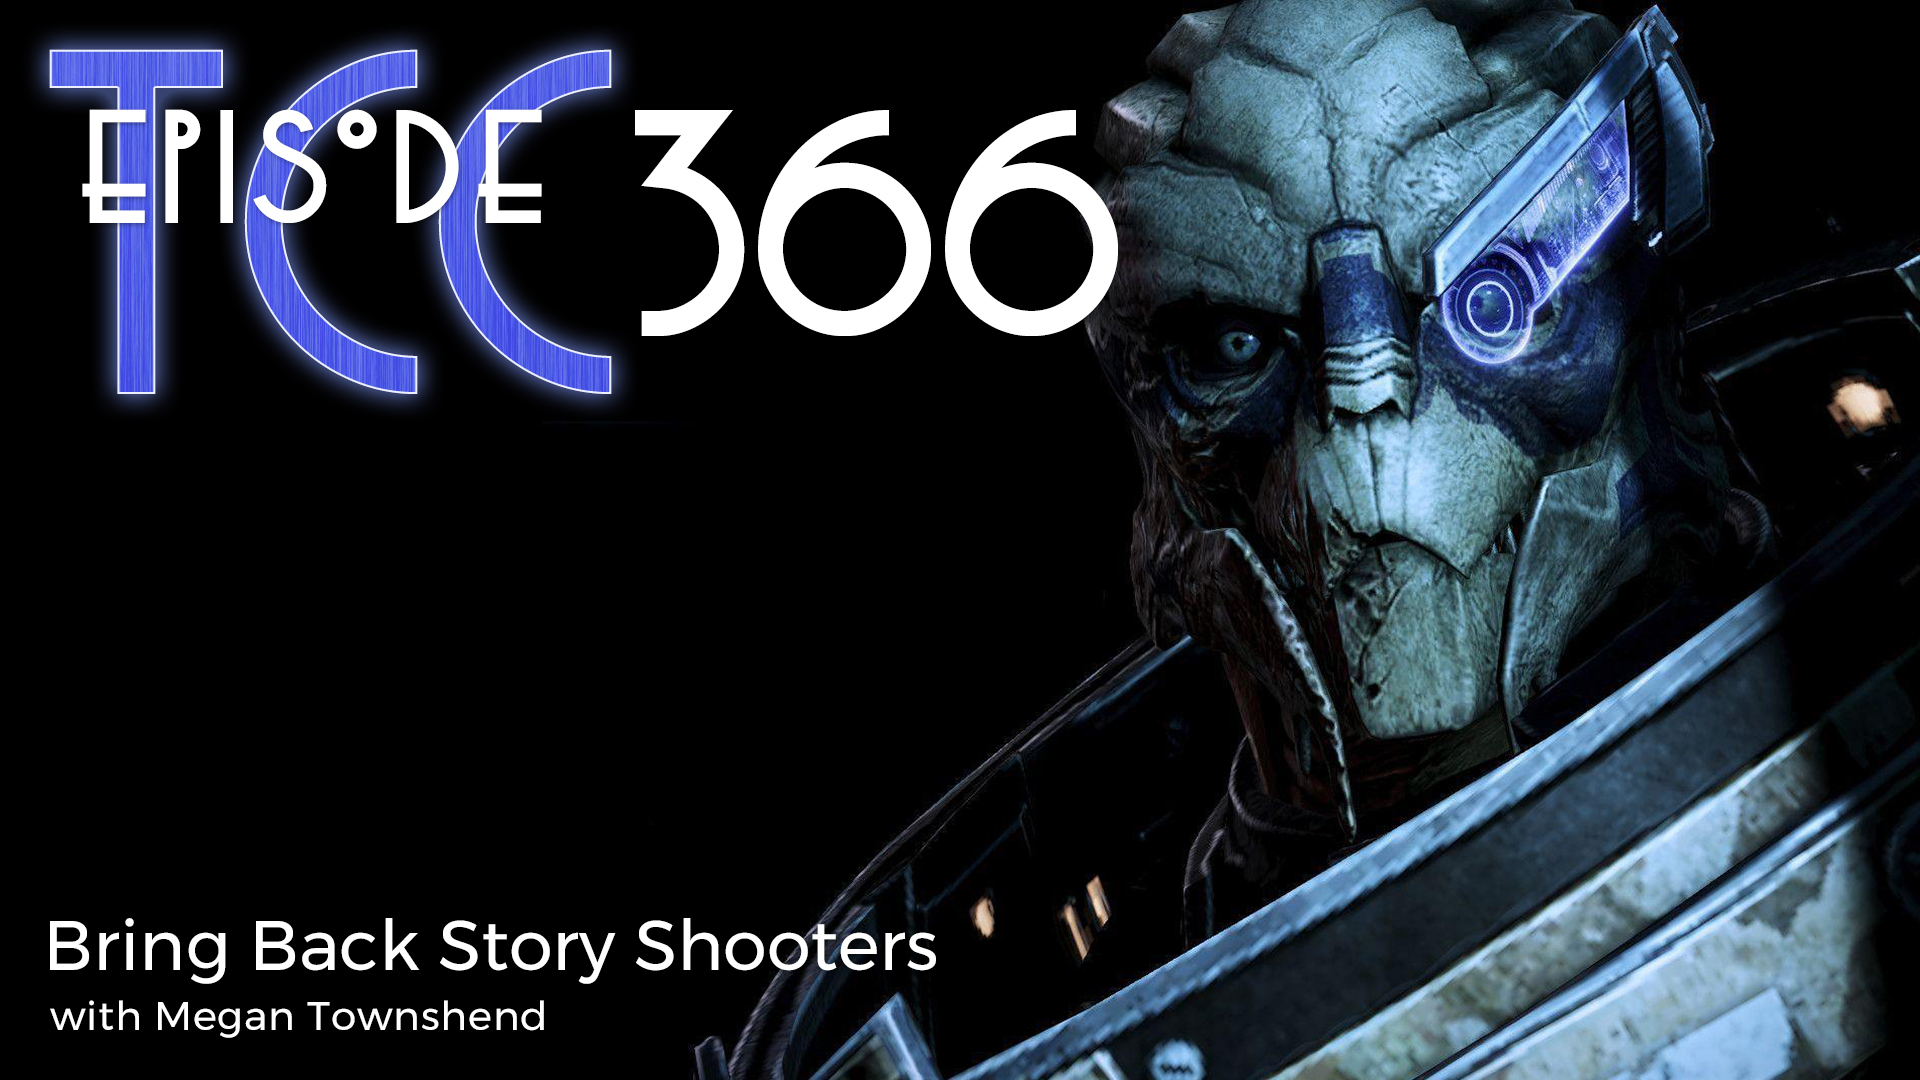 The Citadel Cafe 366: Bring Back Story Shooters